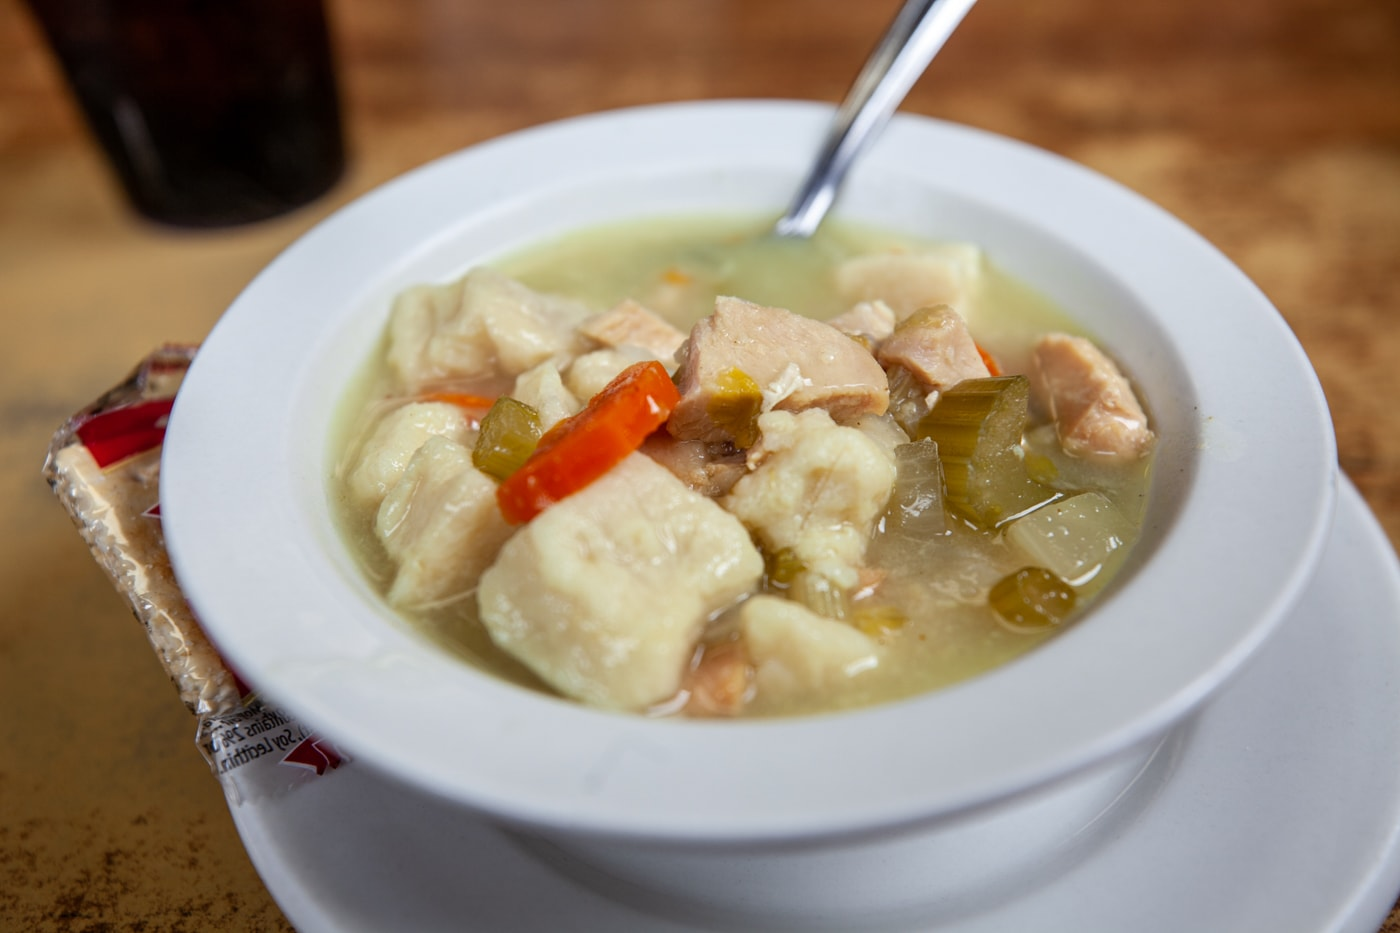 Chicken dumpling soup from 600 Miles Cafe in Miles City, Montana.